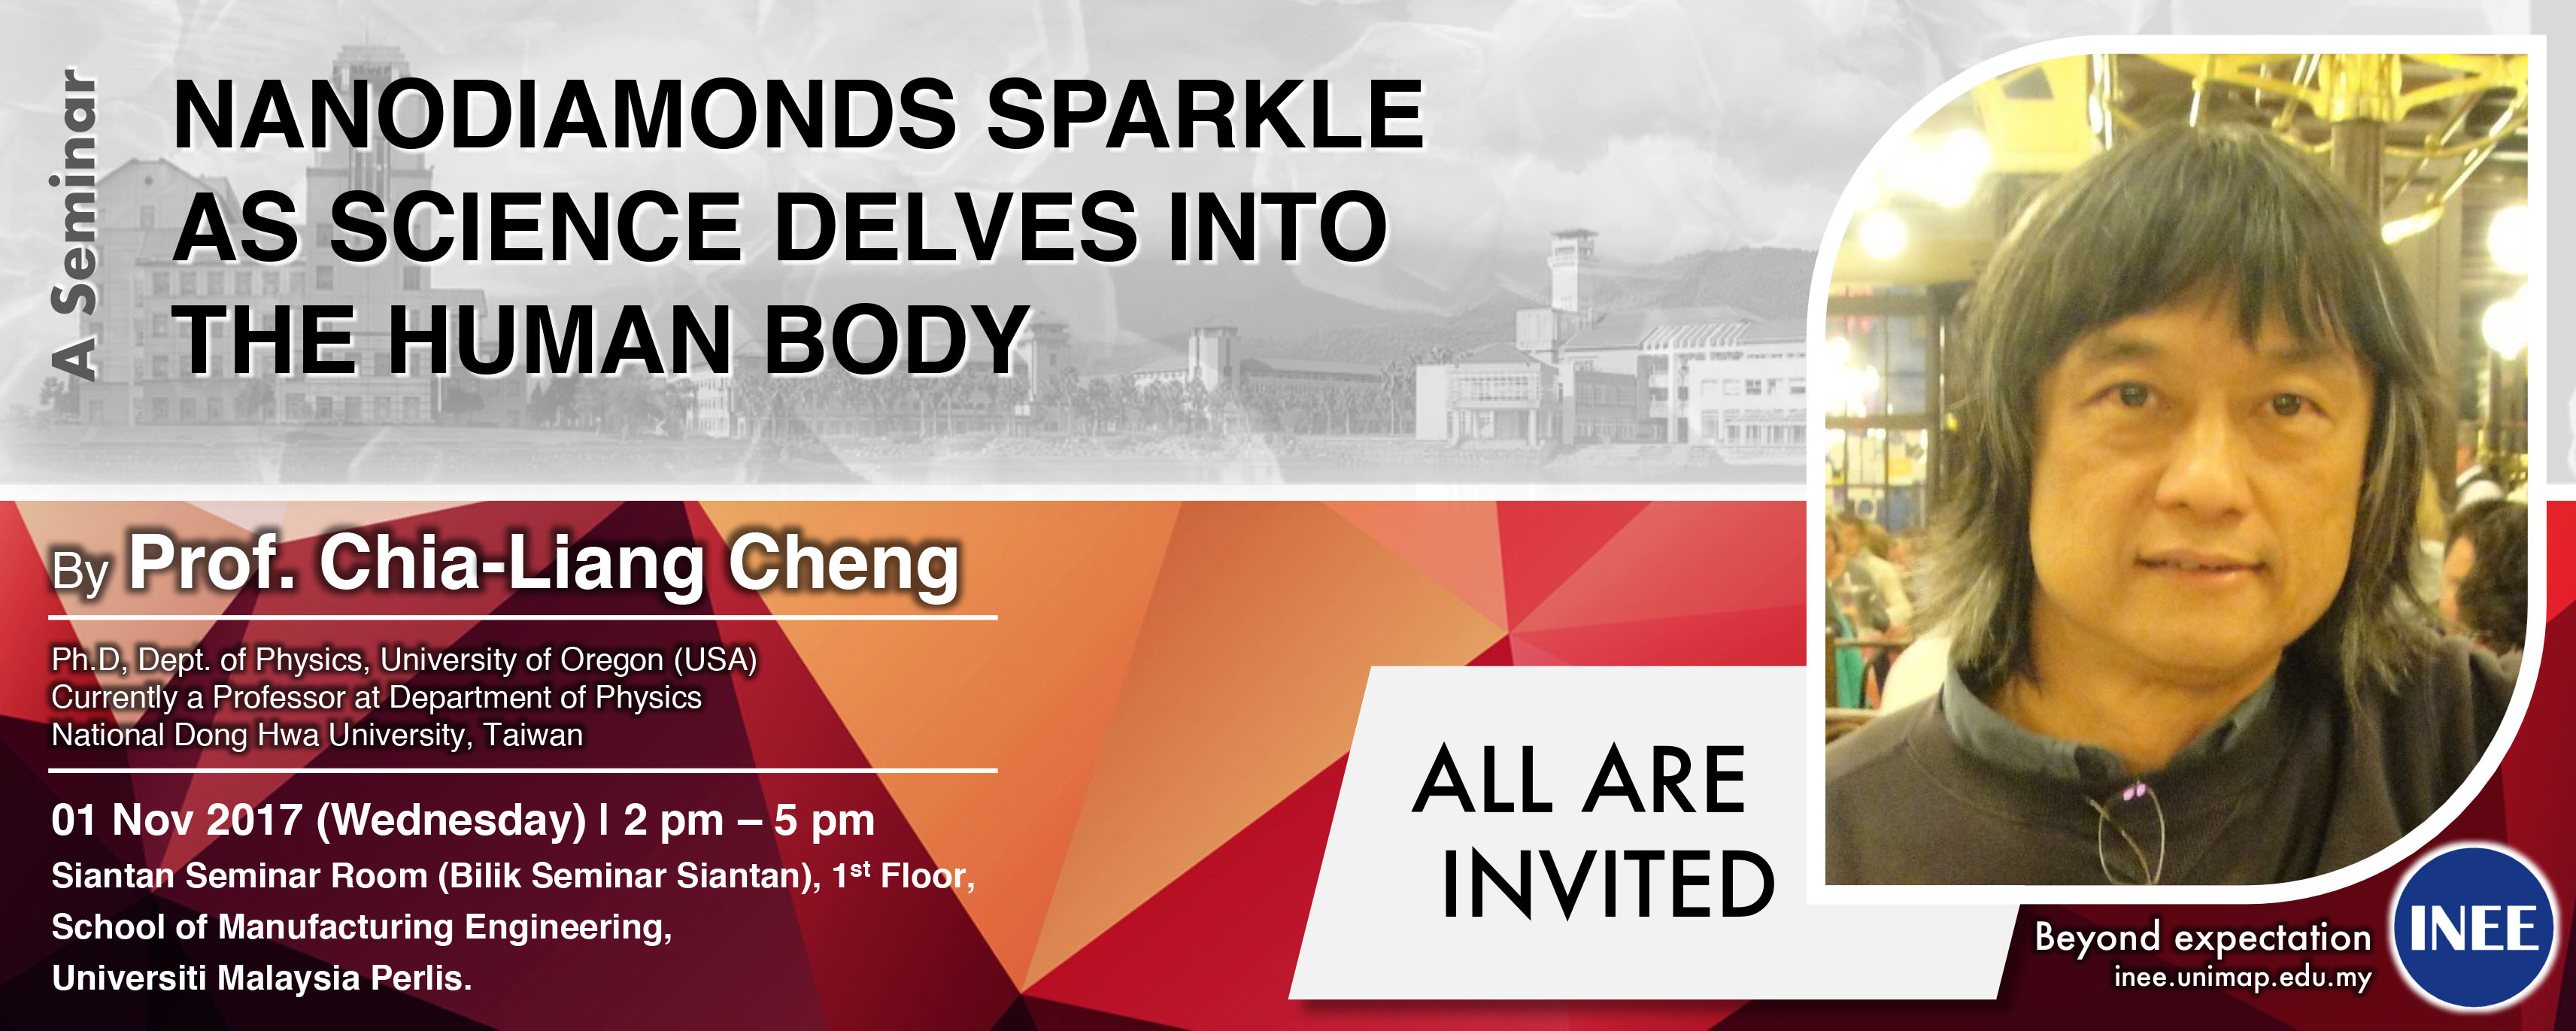 A Seminar Nanodiamonds Sparkle as Science Delves into the Human Body by Prof. Chia-Liang Cheng